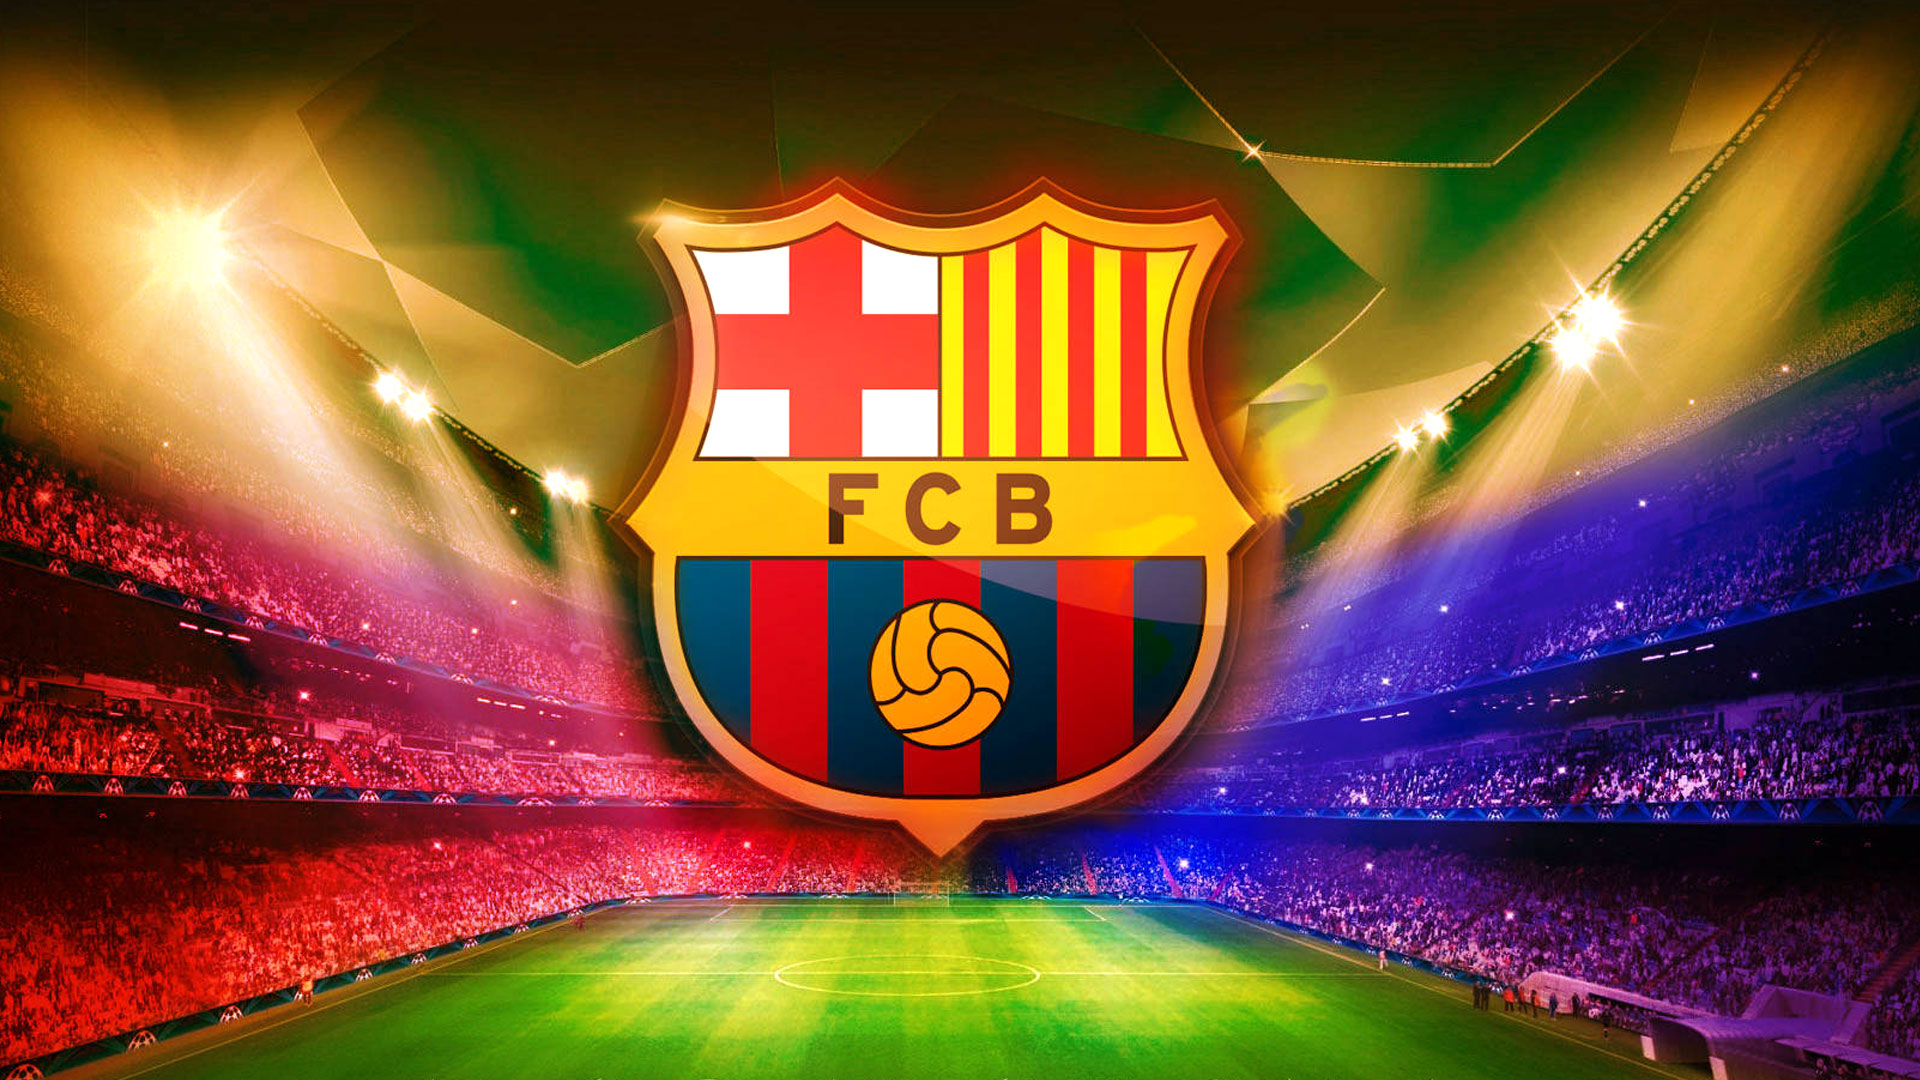 Barcelona-is-the-most-popular-soccer-clubs-in-the-whole-world-Their-fan-base-is-one-of-the-biggest-wallpaper-wp3402853